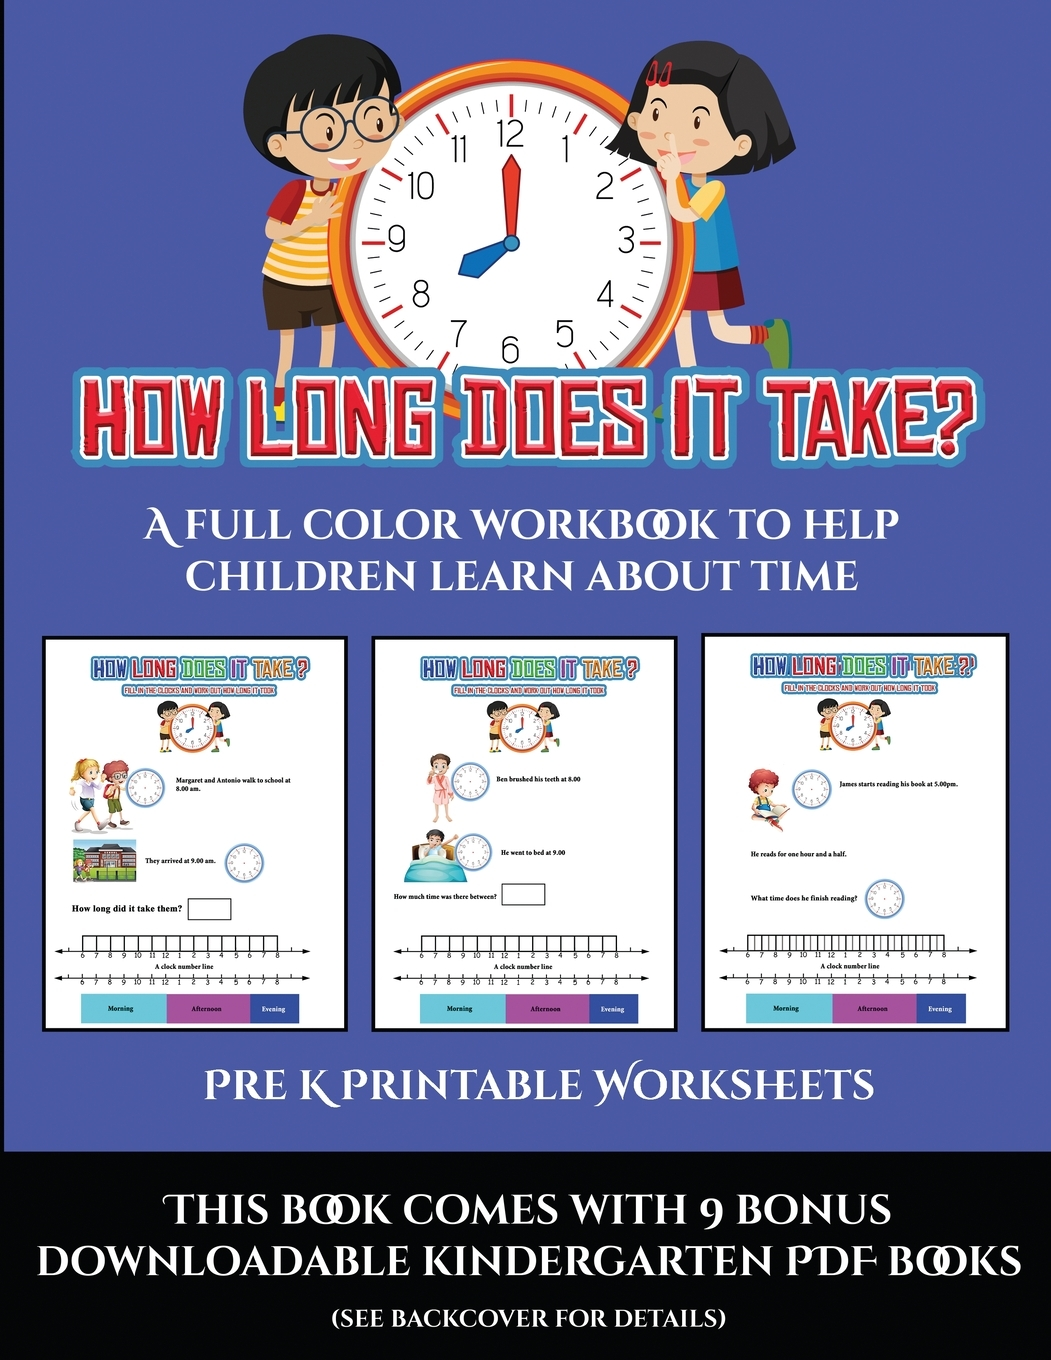 Pre K Printable Worksheets Pre K Printable Worksheets